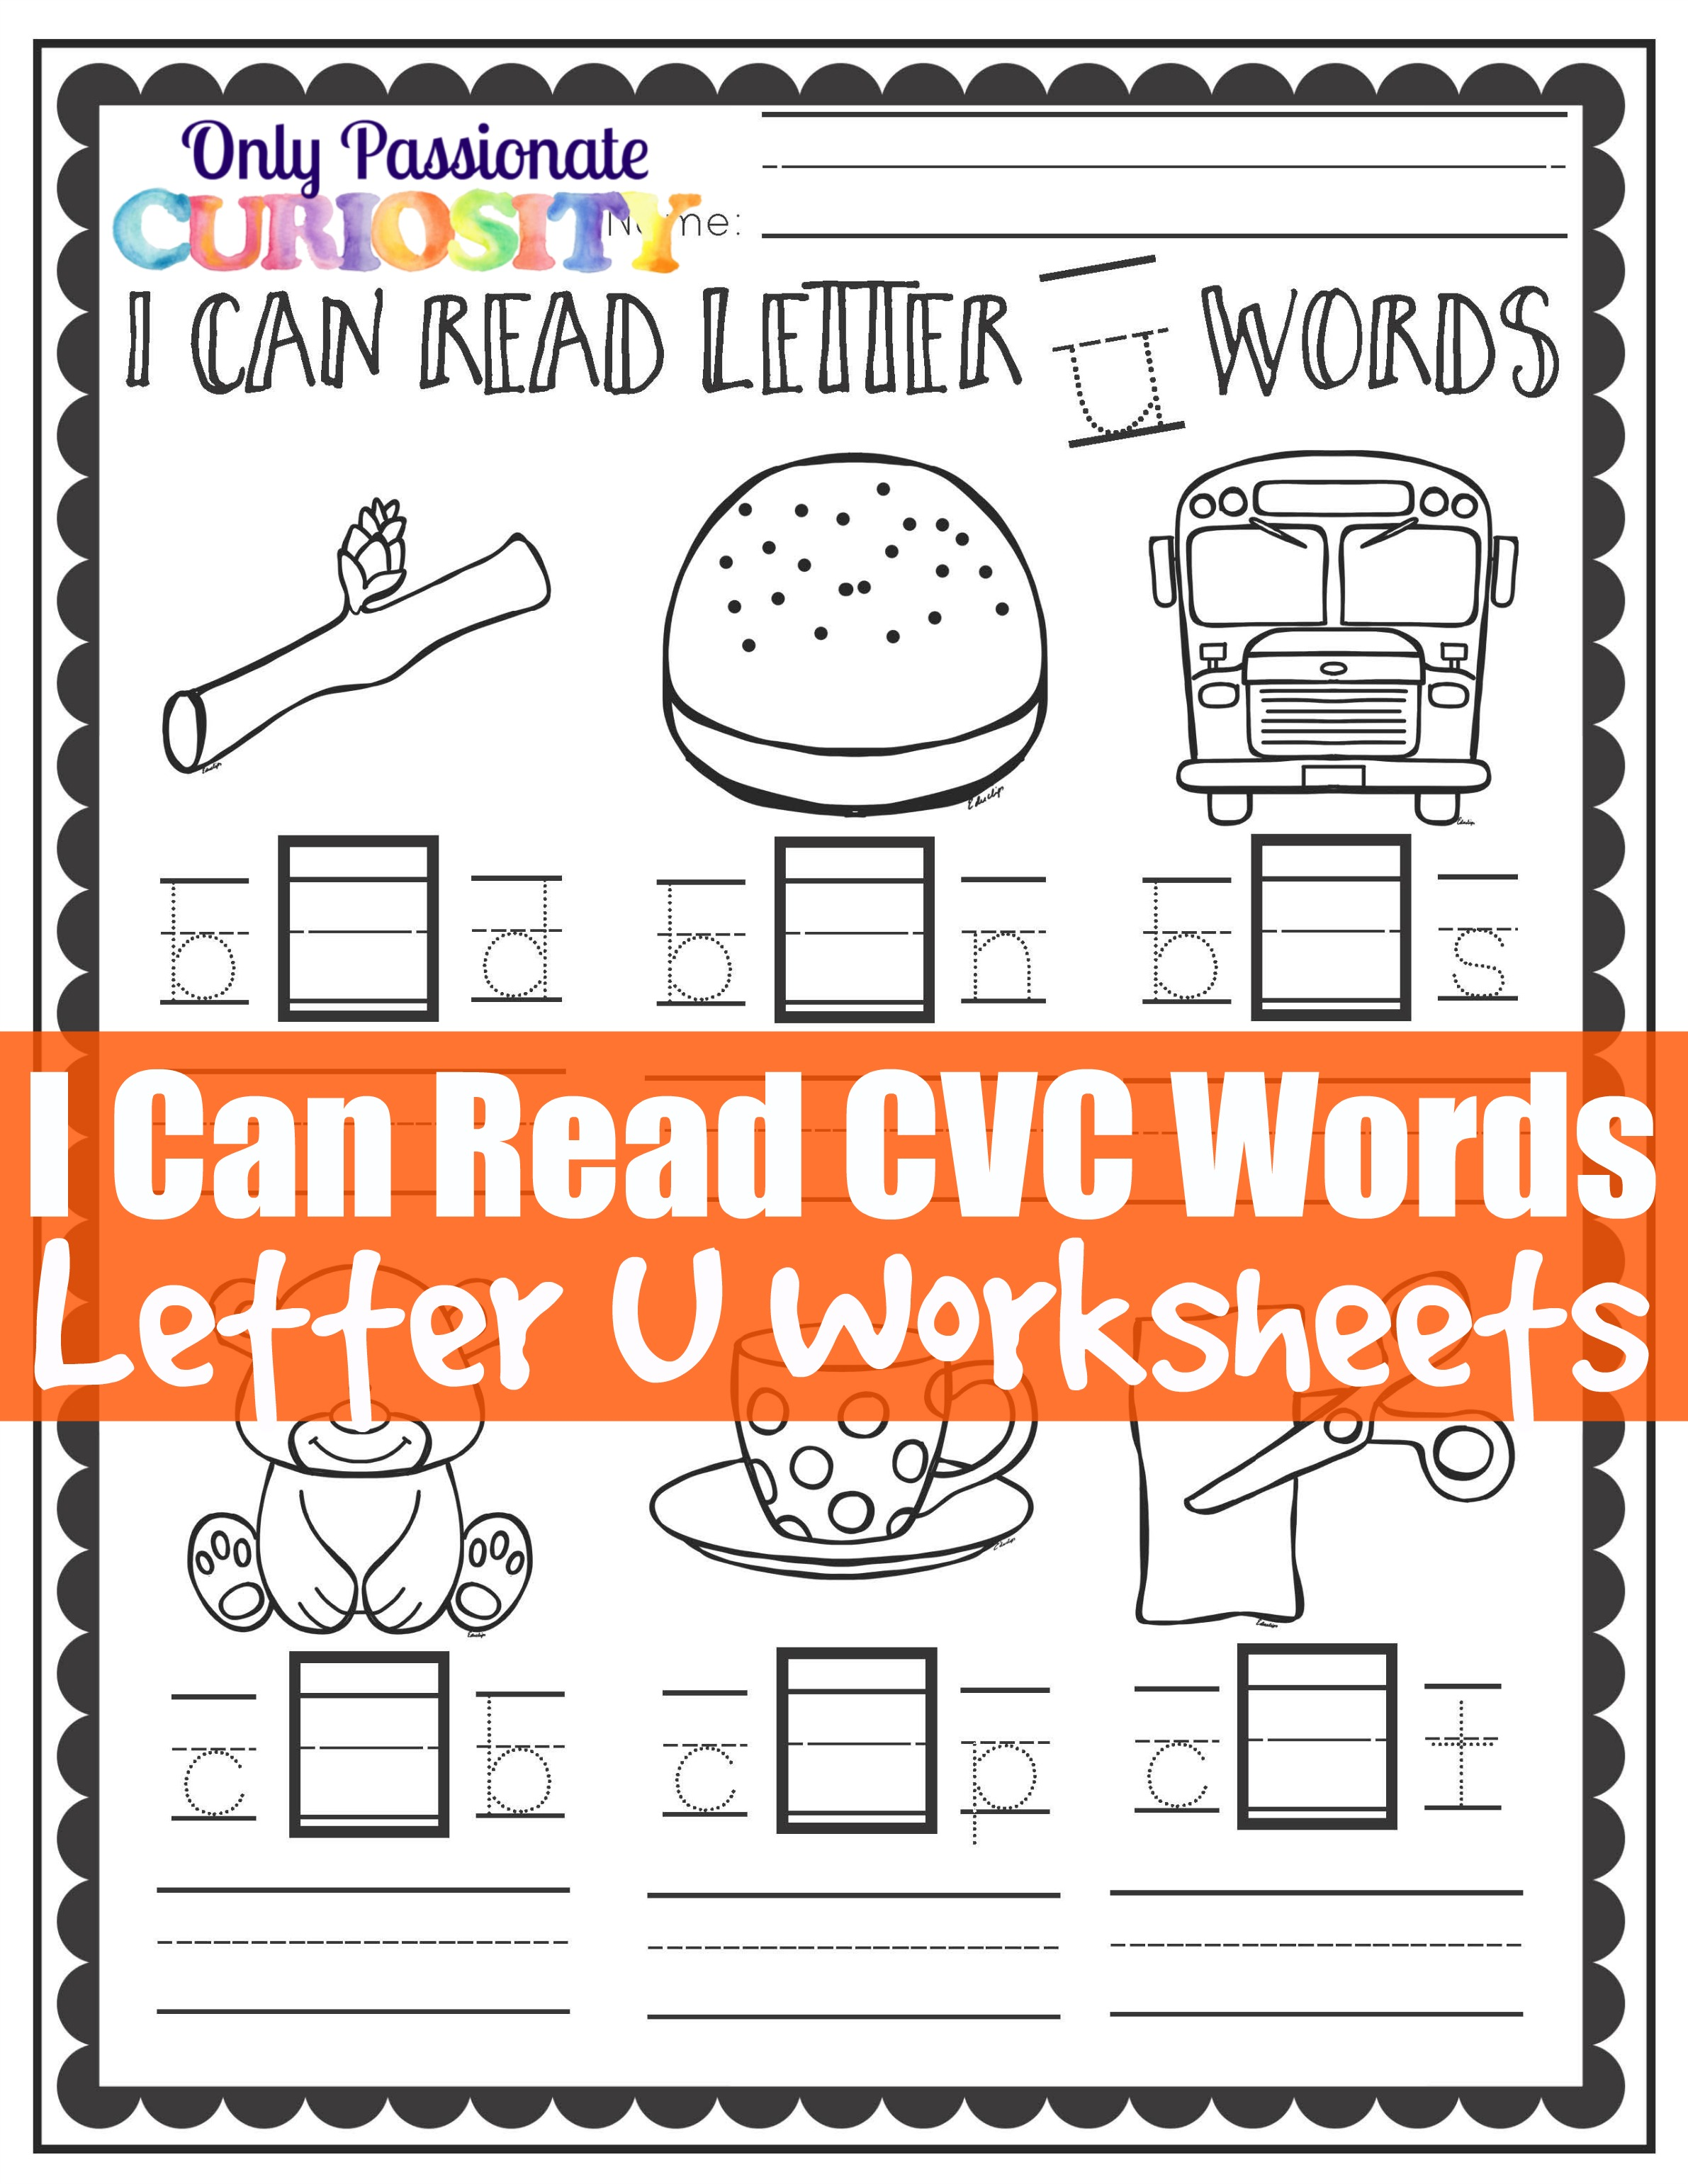 Cvc Worksheets Middle U Words Only Passionate Curiosity